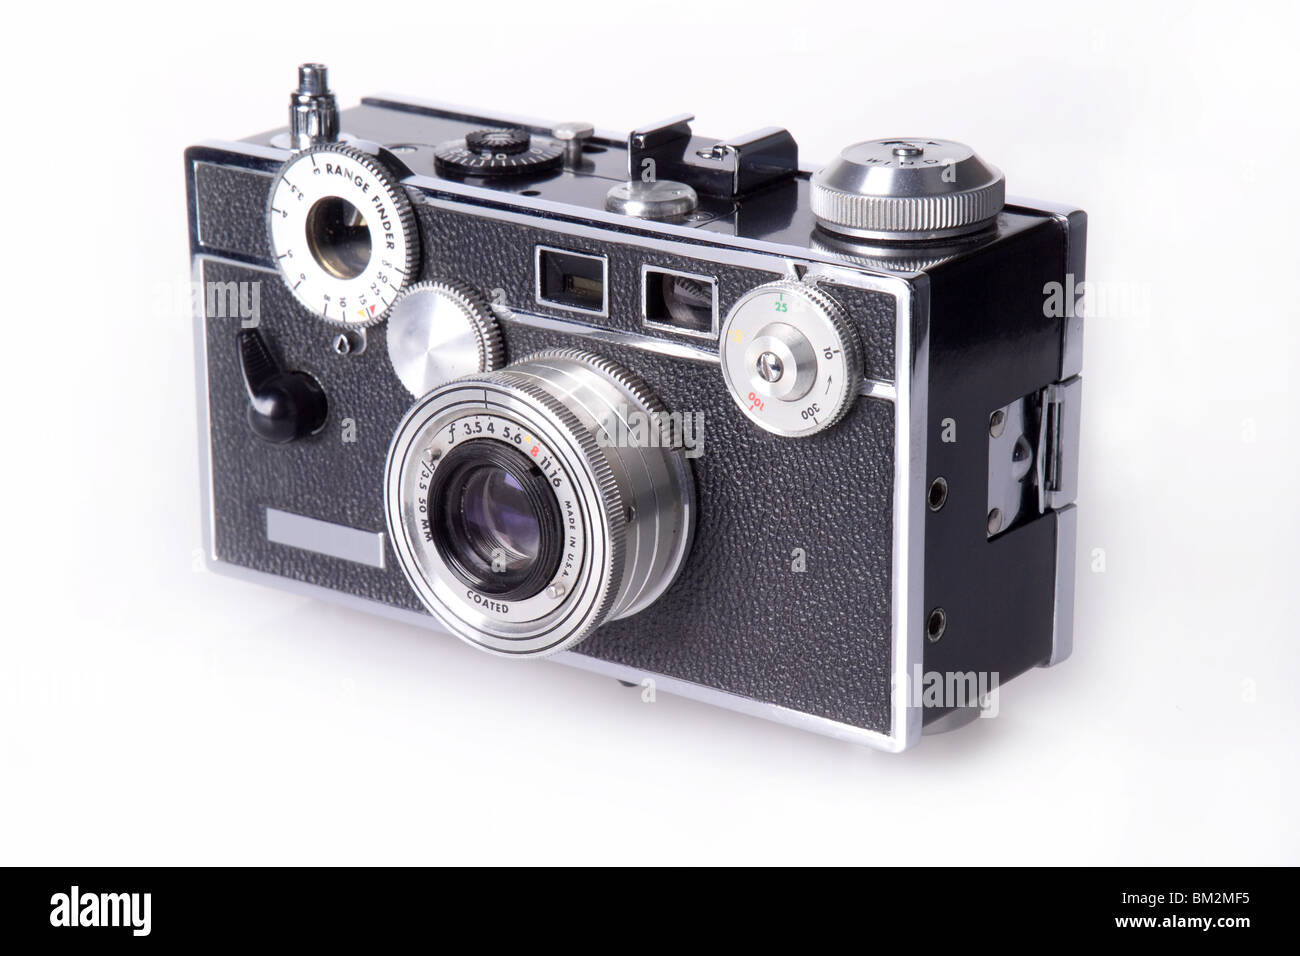 Side view of classic film rangefinder camera - Stock Image